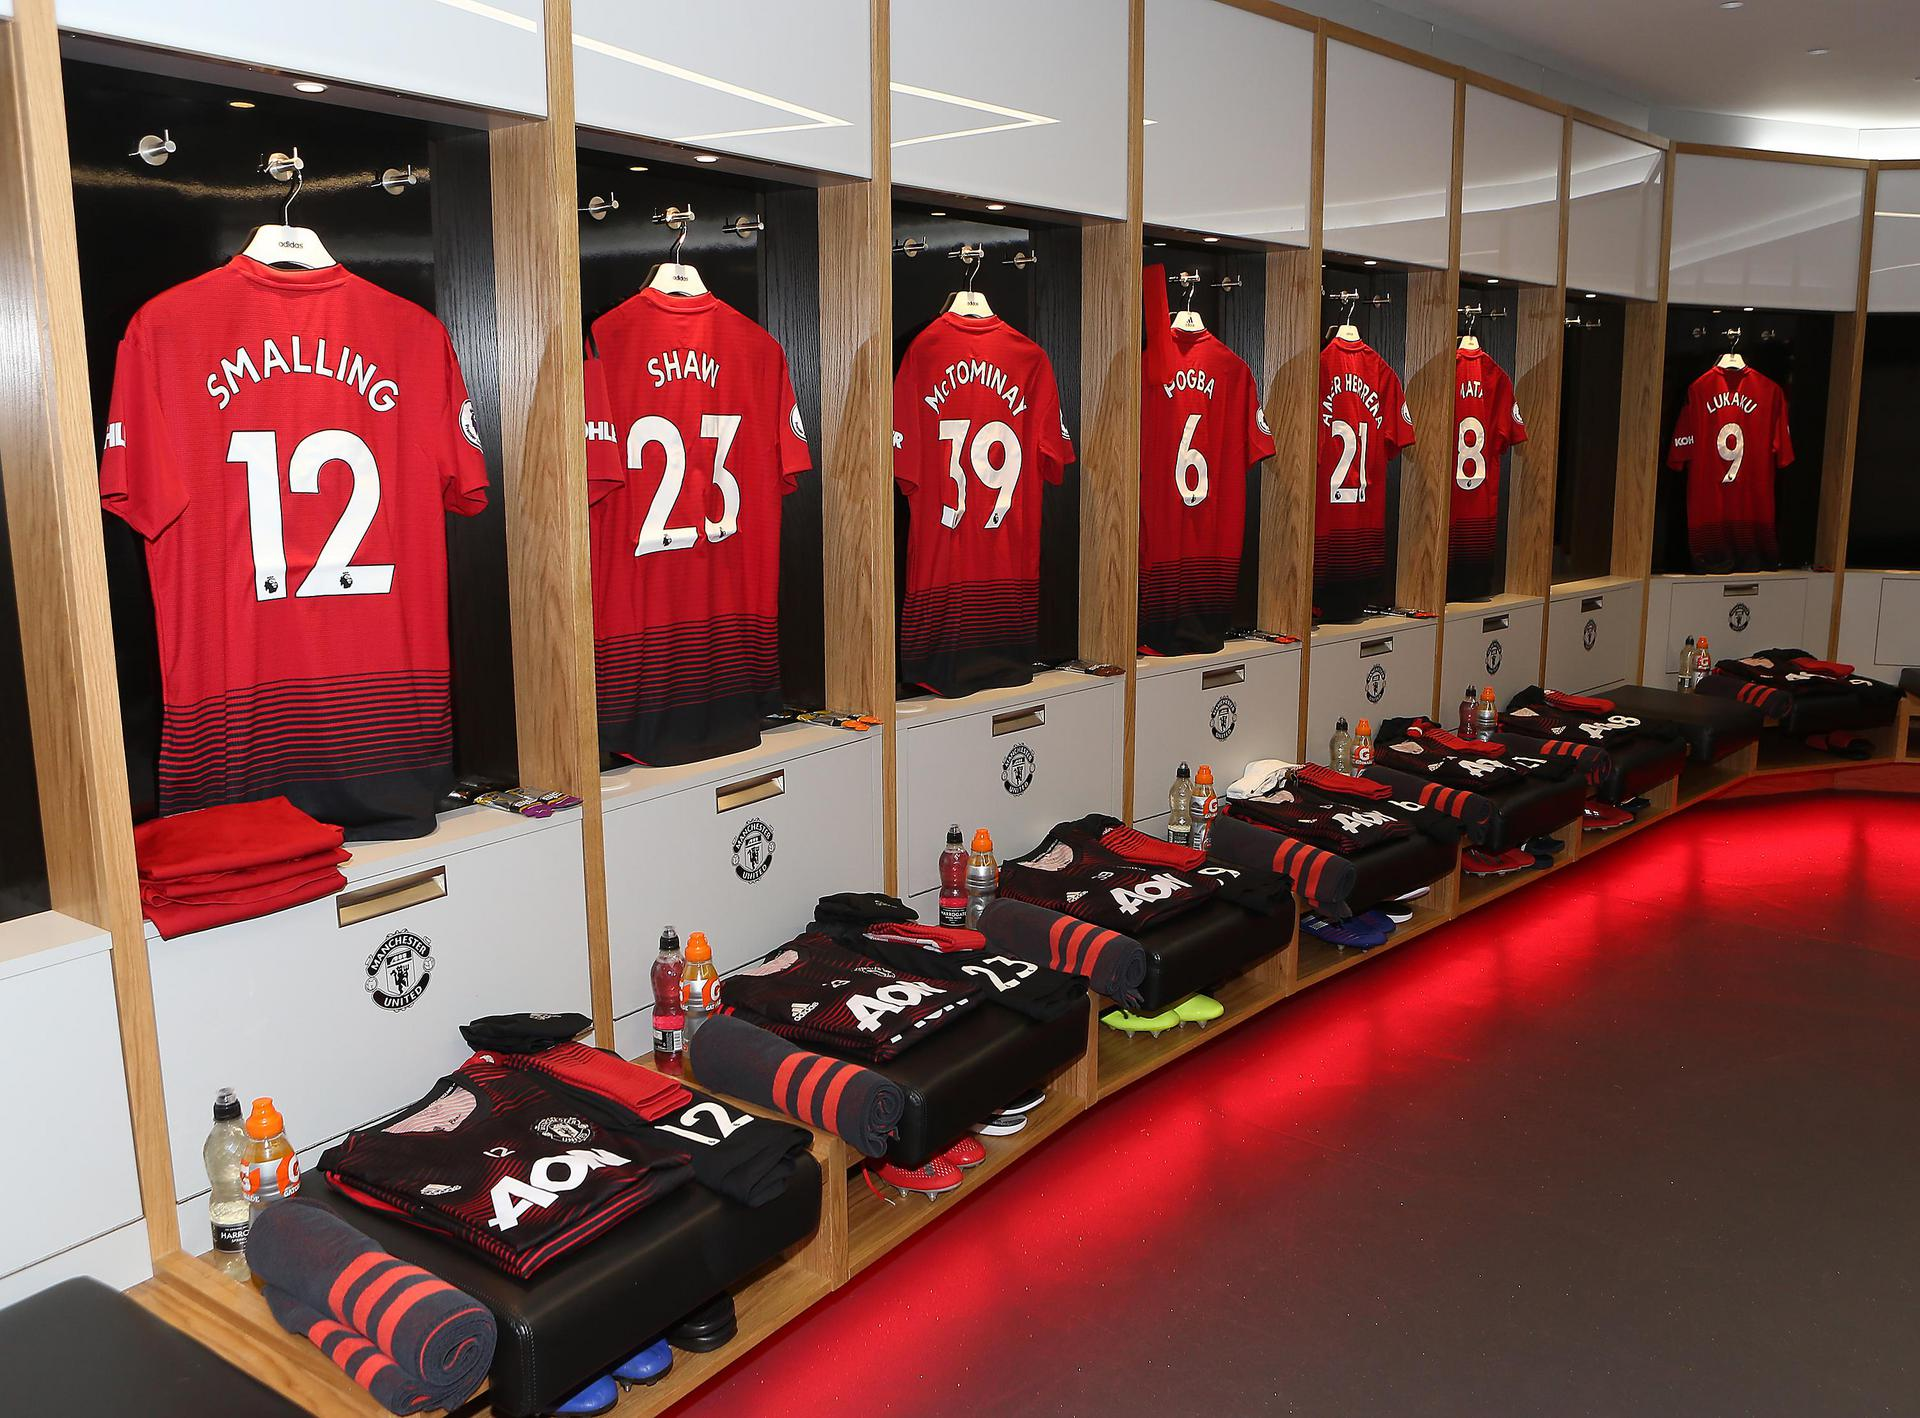 Manchester United shirts in the dressing room